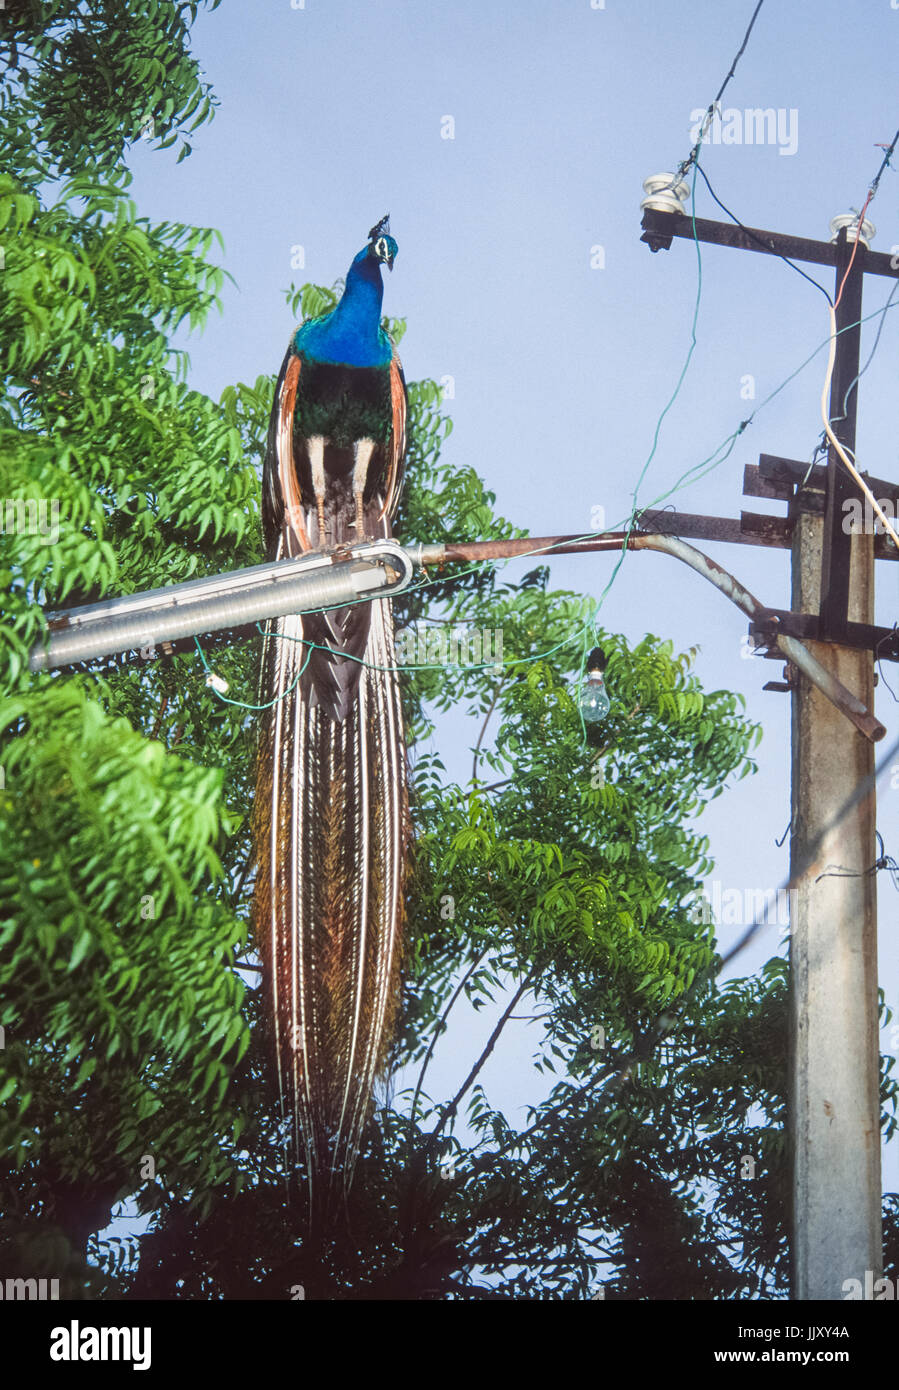 male Indian Peacock or Peafowl, (Pavo cristatus), perched on street light, Bharatpur, Rajasthan, India - Stock Image